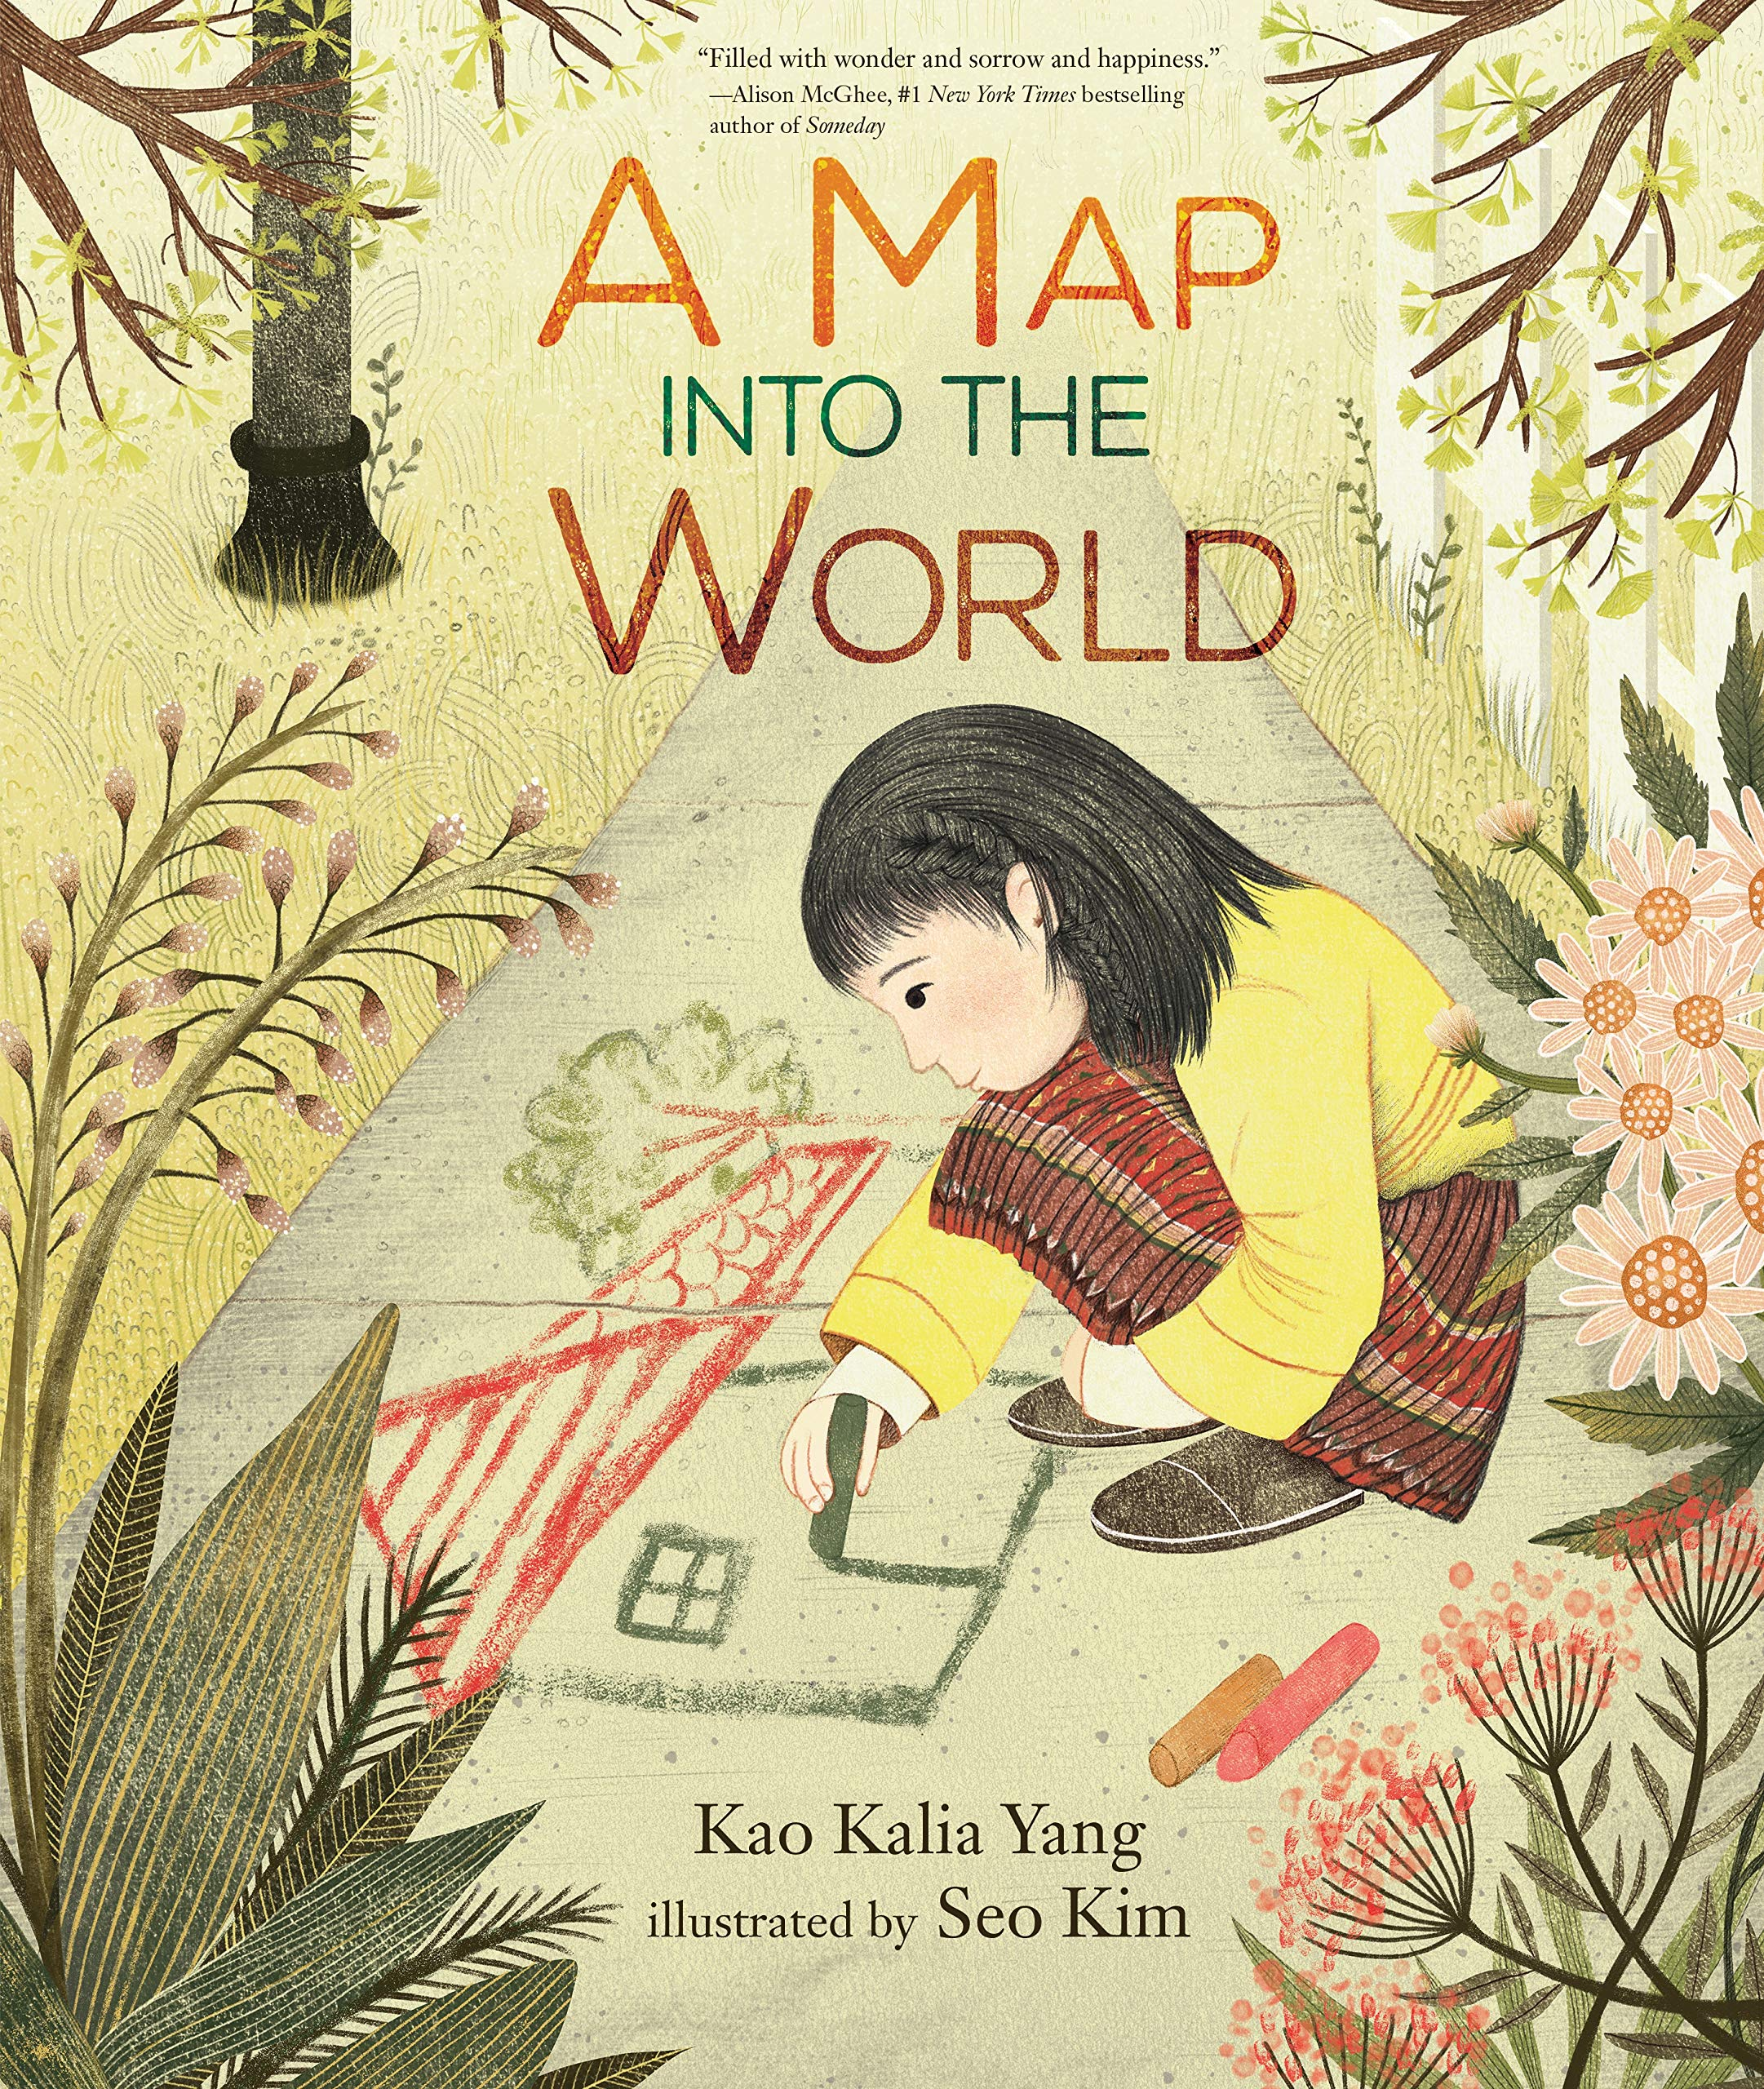 Book image of the the book A Map of the World by: Kao Kalia Yang